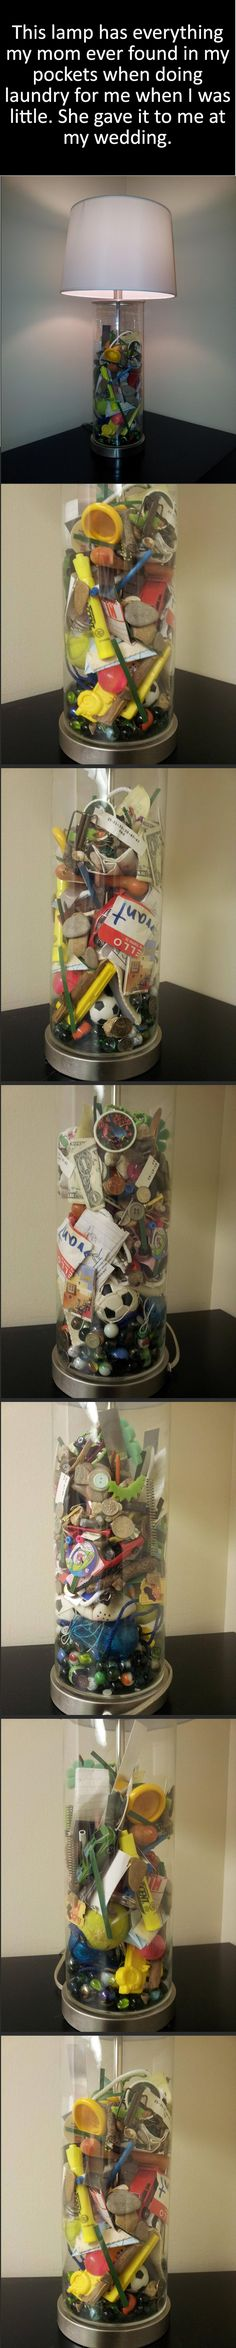 A mother saved all the things she found on his son pockets when doing the laundry. She gave him this lamp with all things found for his wedding.--So cool!!!